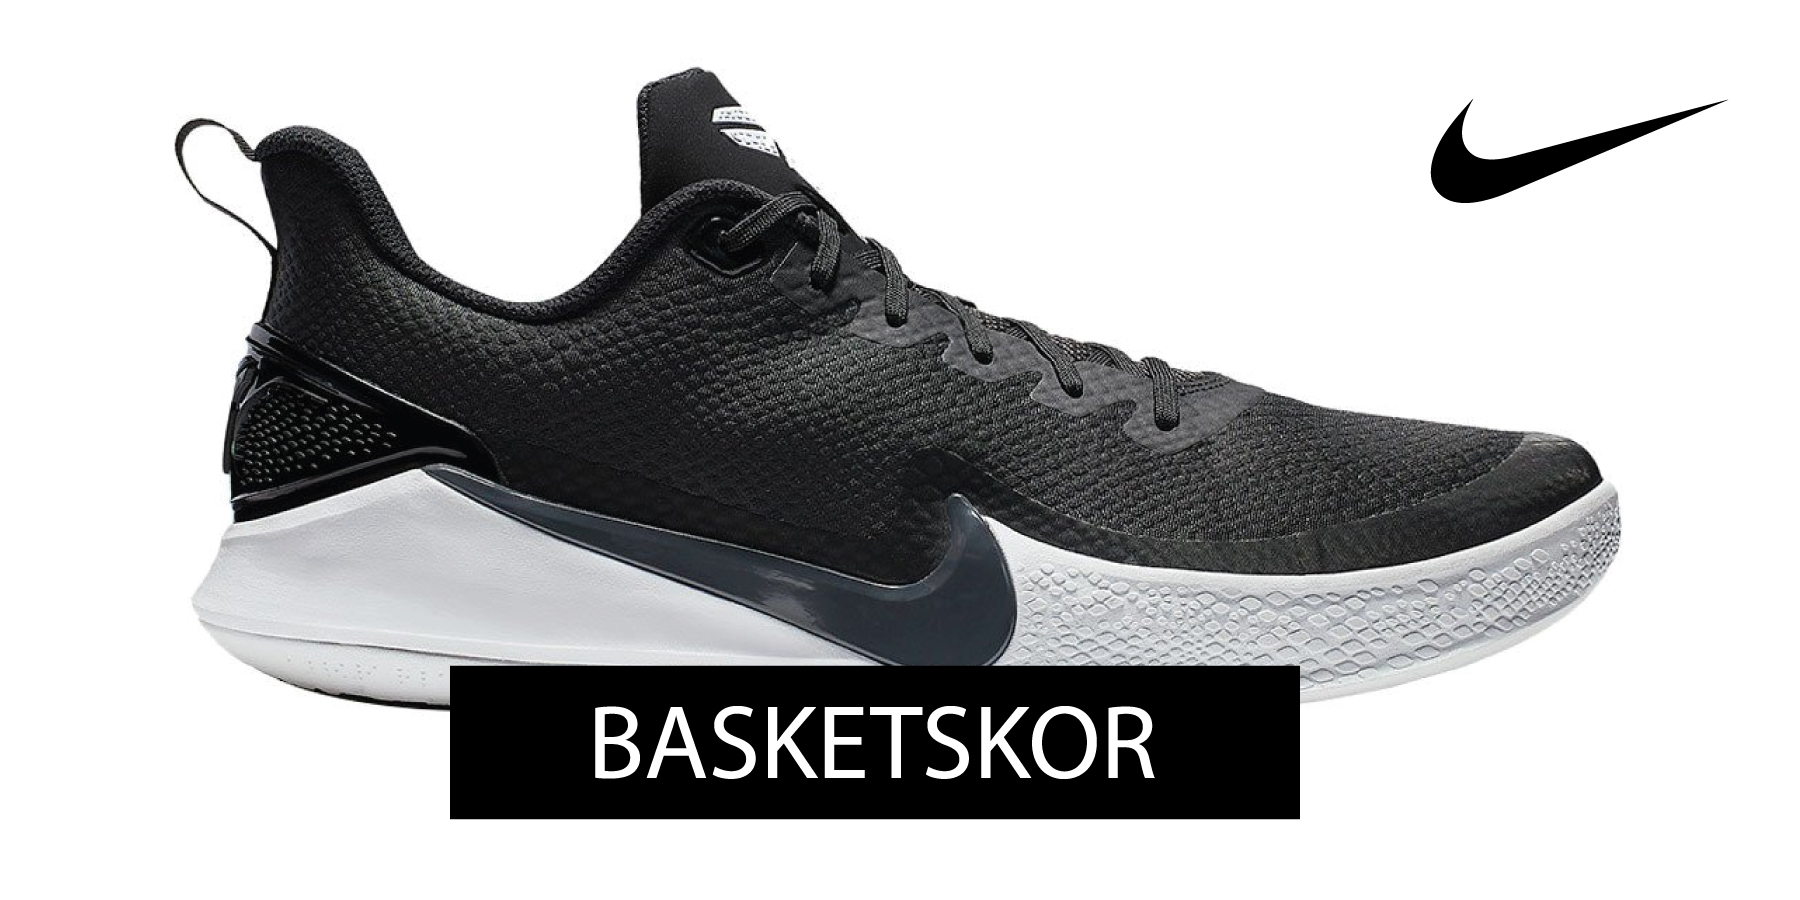 finest selection b9a8e 7cfaf Din basketbutik i Stockholm   online